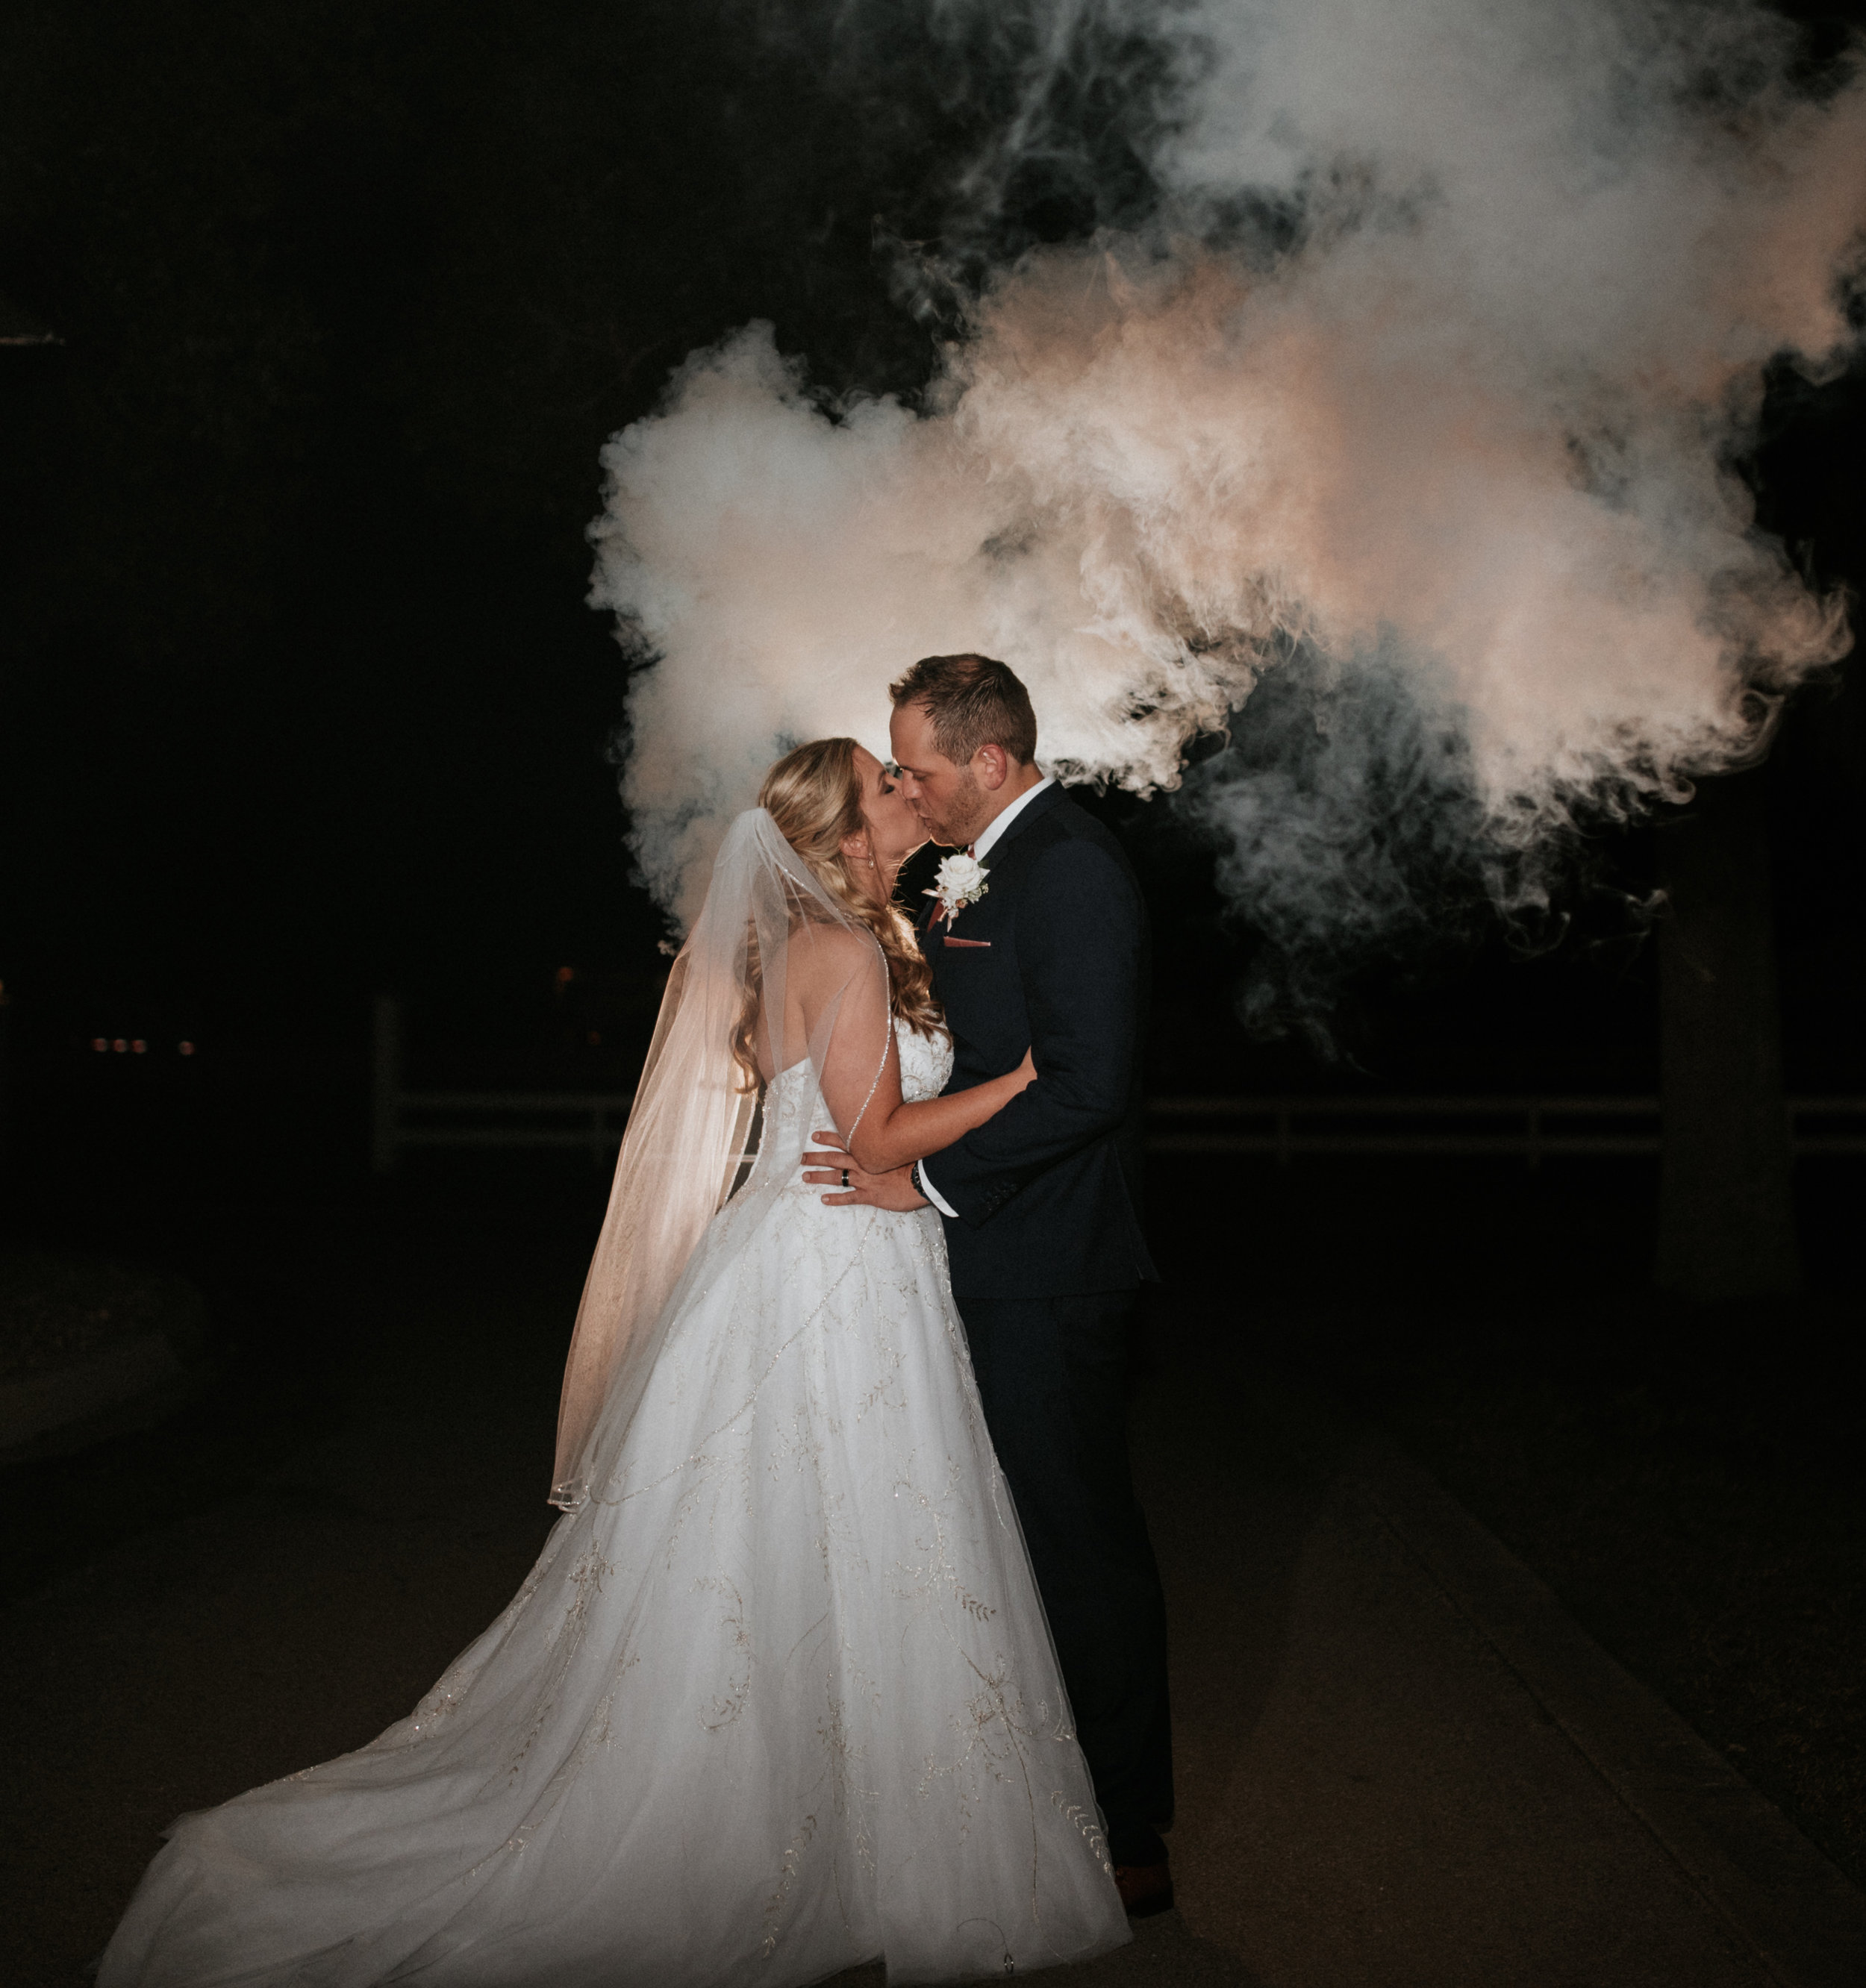 JacksonWeddingSmokeBomb.jpg